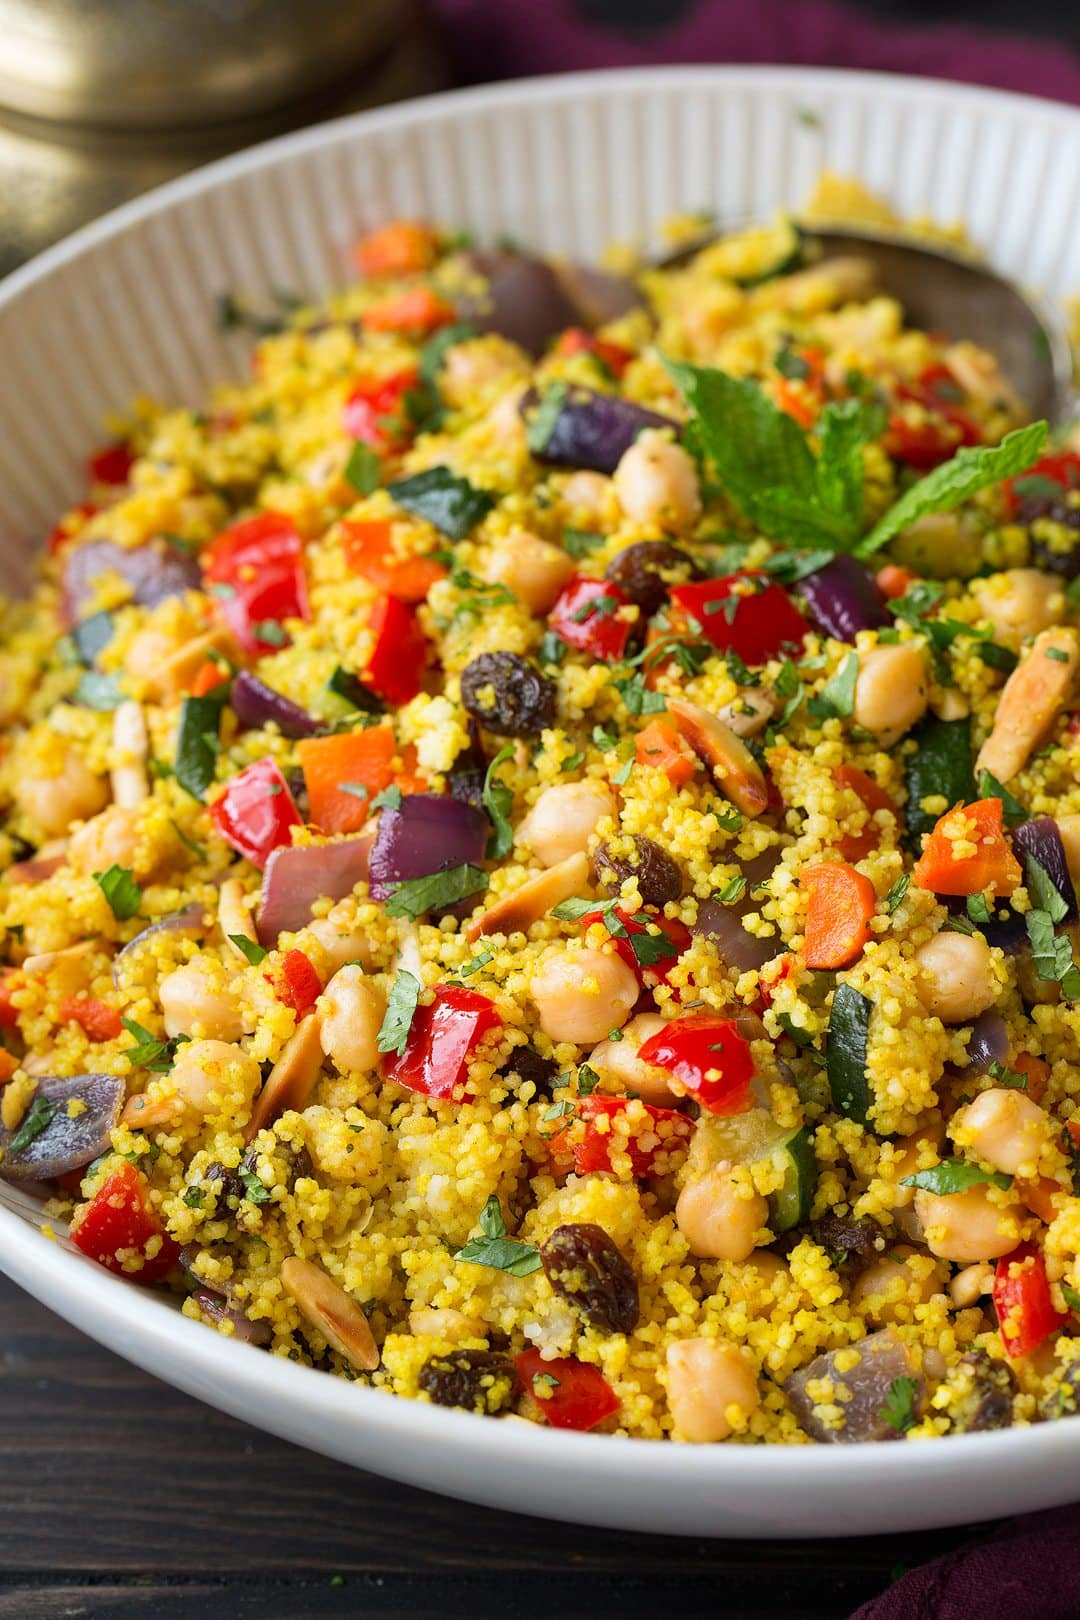 Moroccan Couscous Recipe With Roasted Veggies Cooking Classy